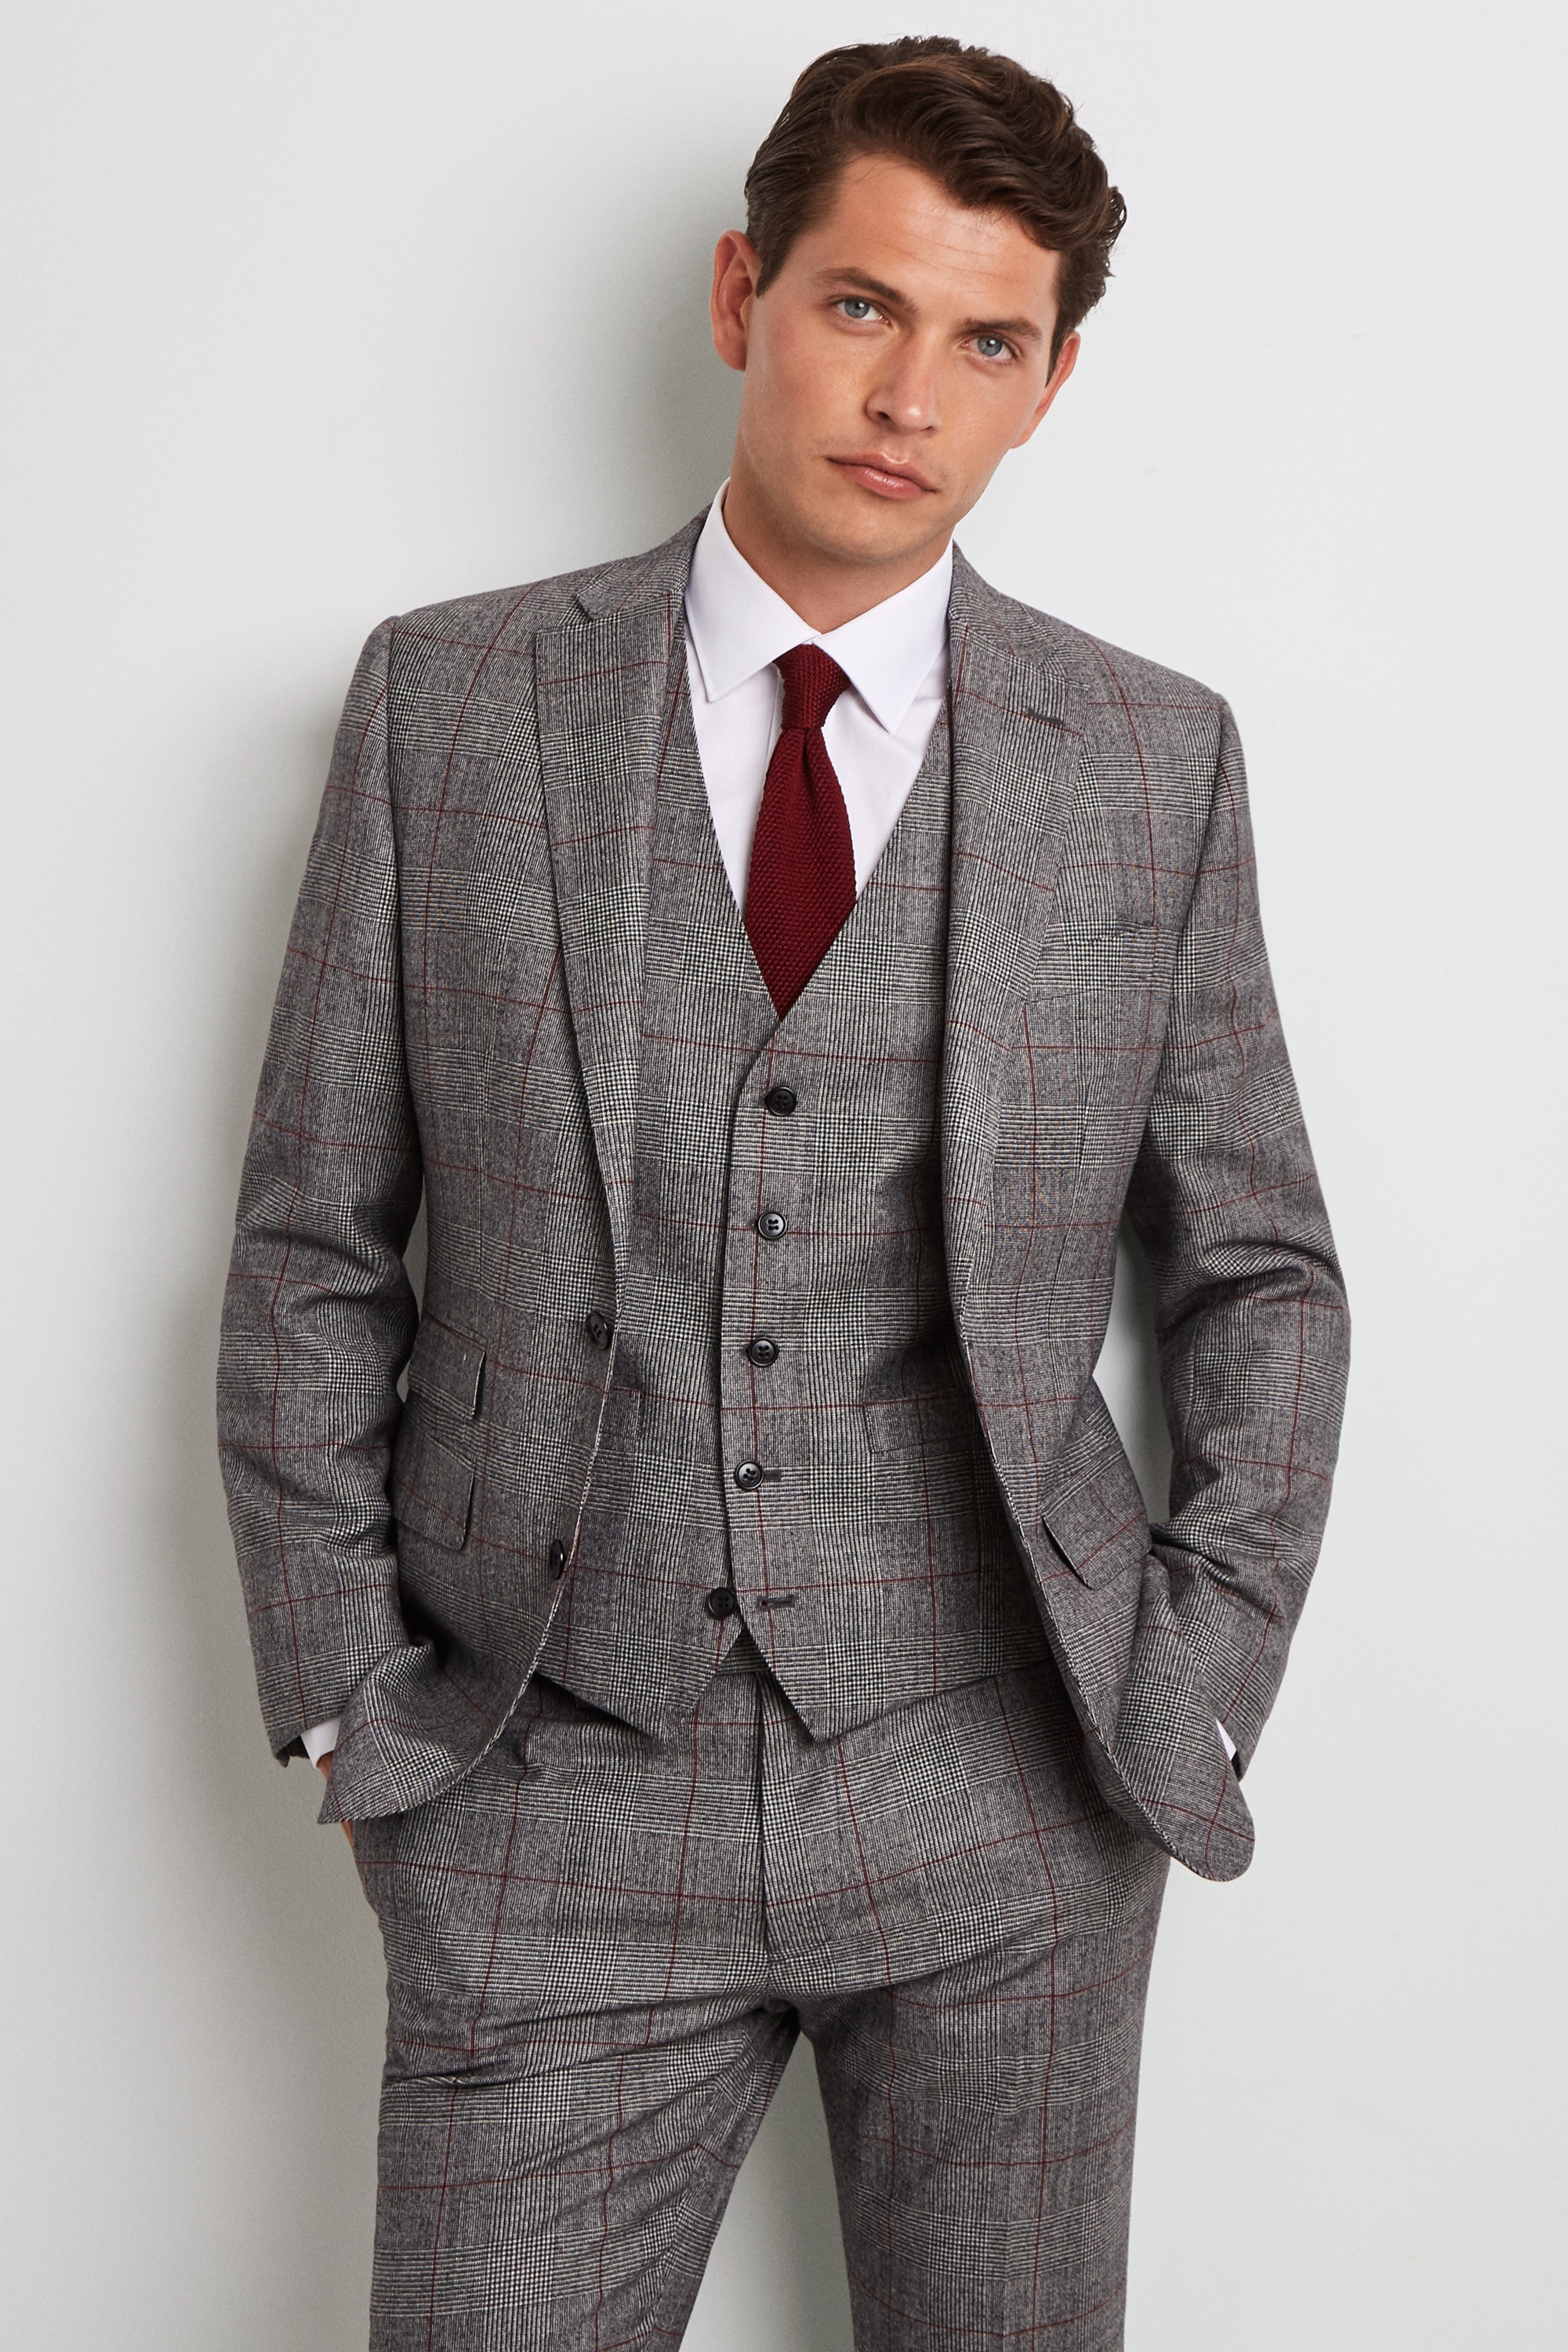 Details about Moss 1851 Mens Suit Jacket Tailored Fit Black \u0026 White with  Red Check 2 Button